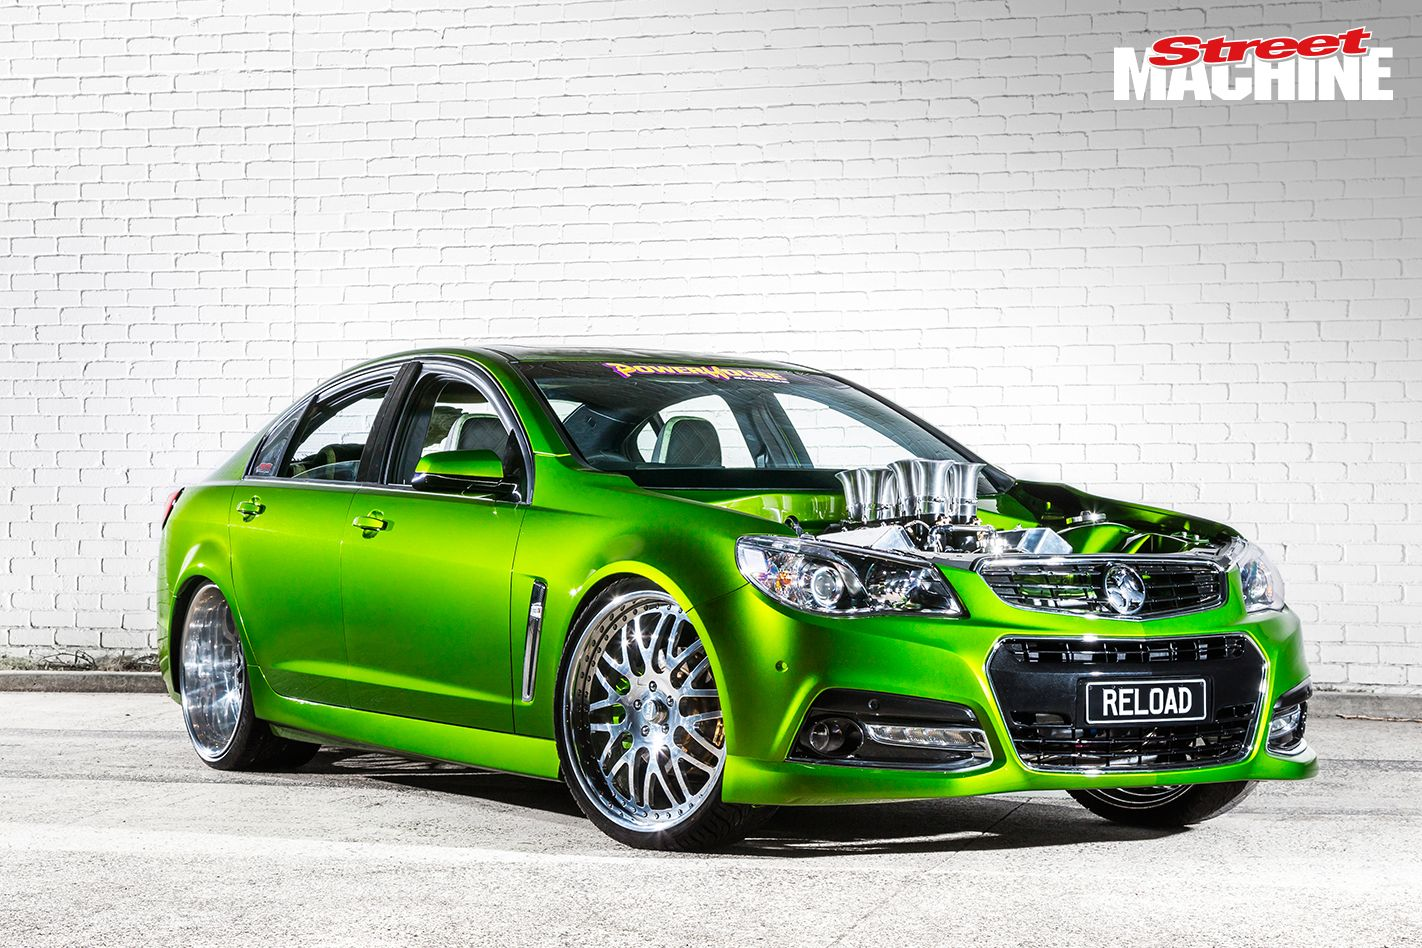 Steven Loader Resets The Matrix With All Motor Tyre Frying Reload Vf Commodore